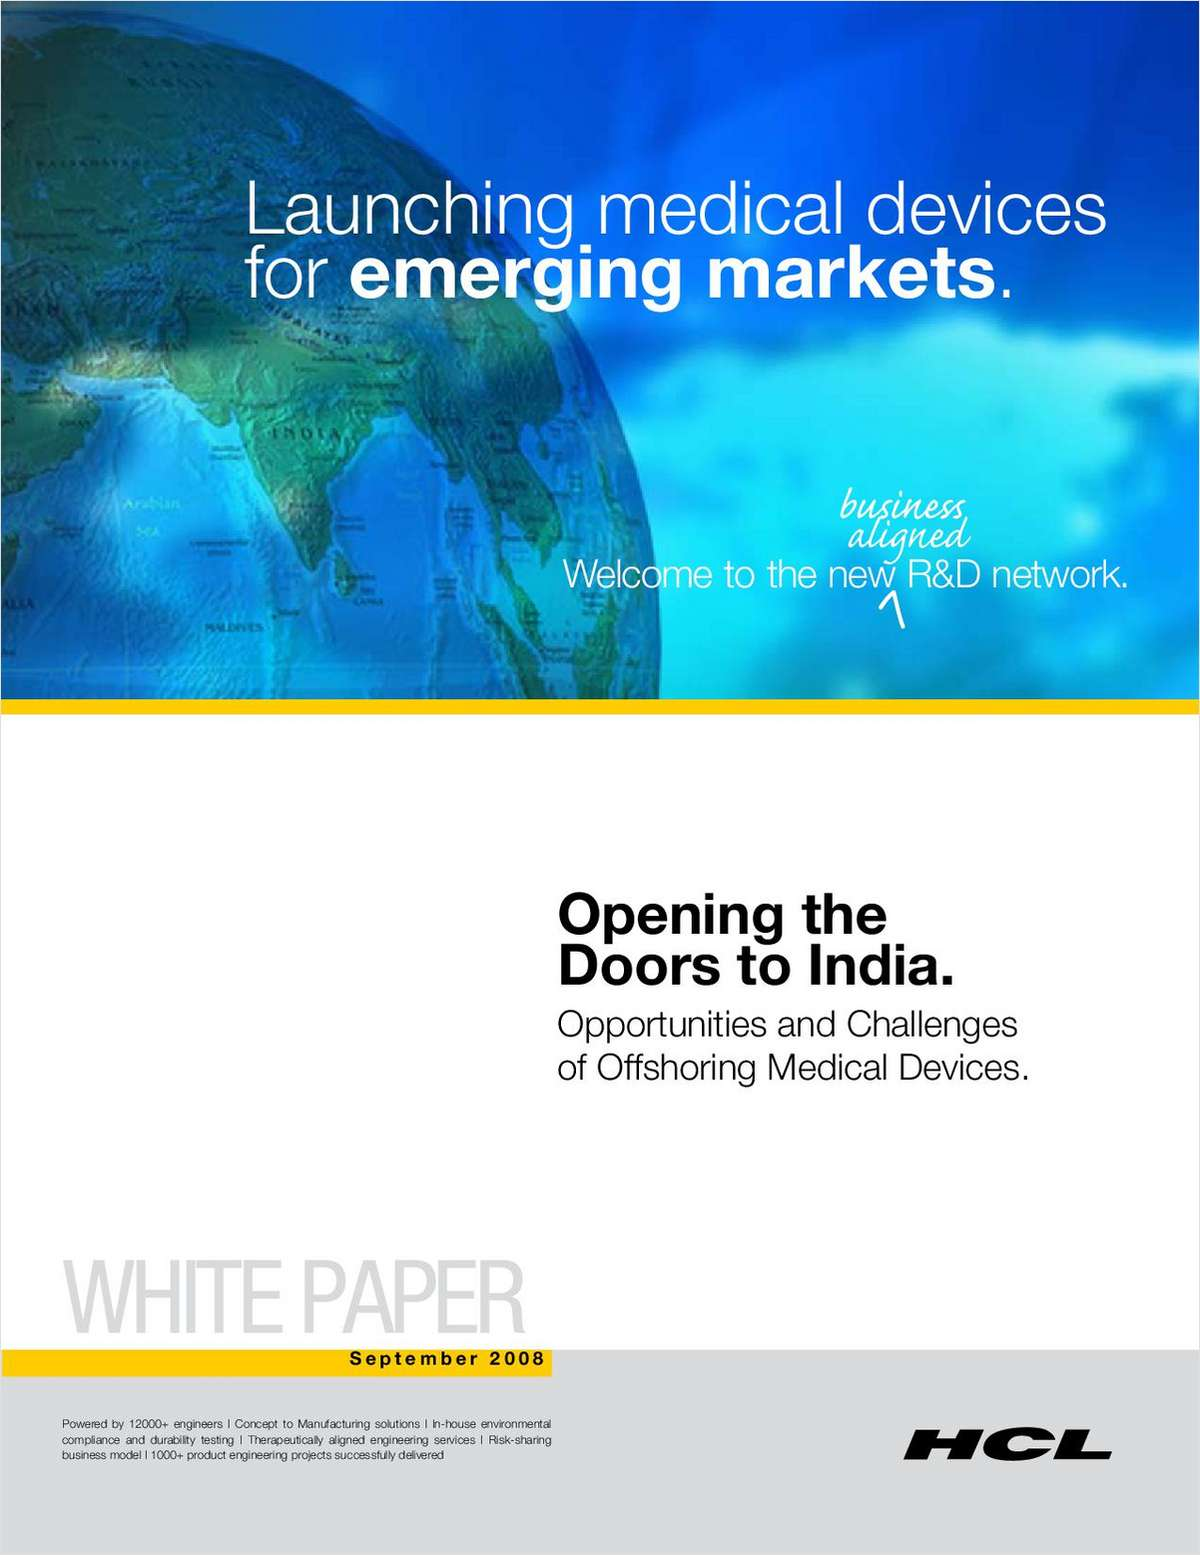 Opening the Doors to India: Opportunities and Challenges of Offshoring Medical Devices